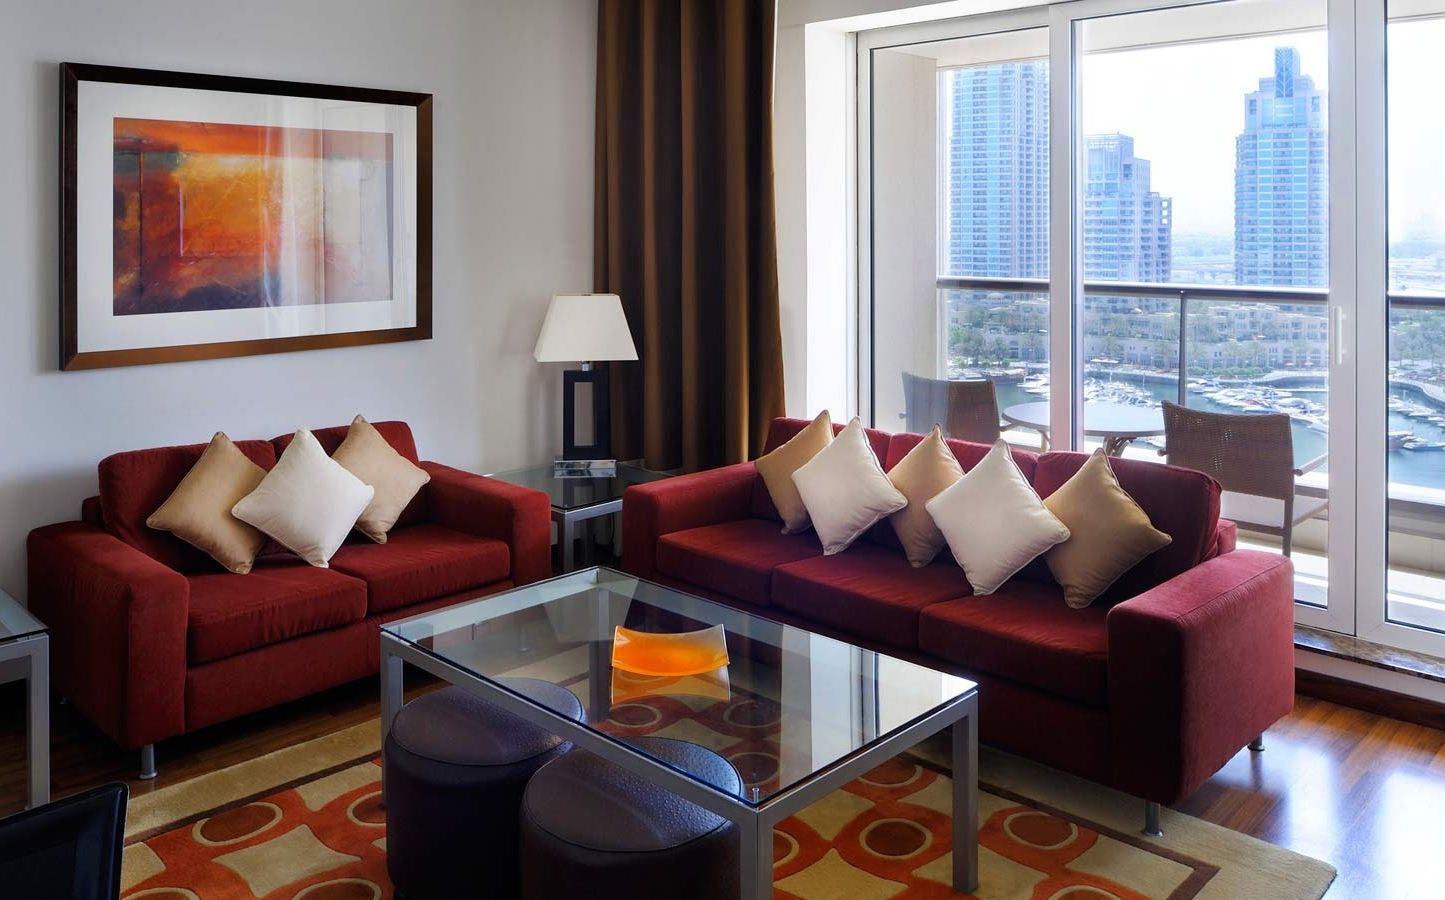 Two Bedroom Furnished  Serviced Apartment. Grosvenor House Dubai   2 Bedroom Furnished  Serviced Apartments